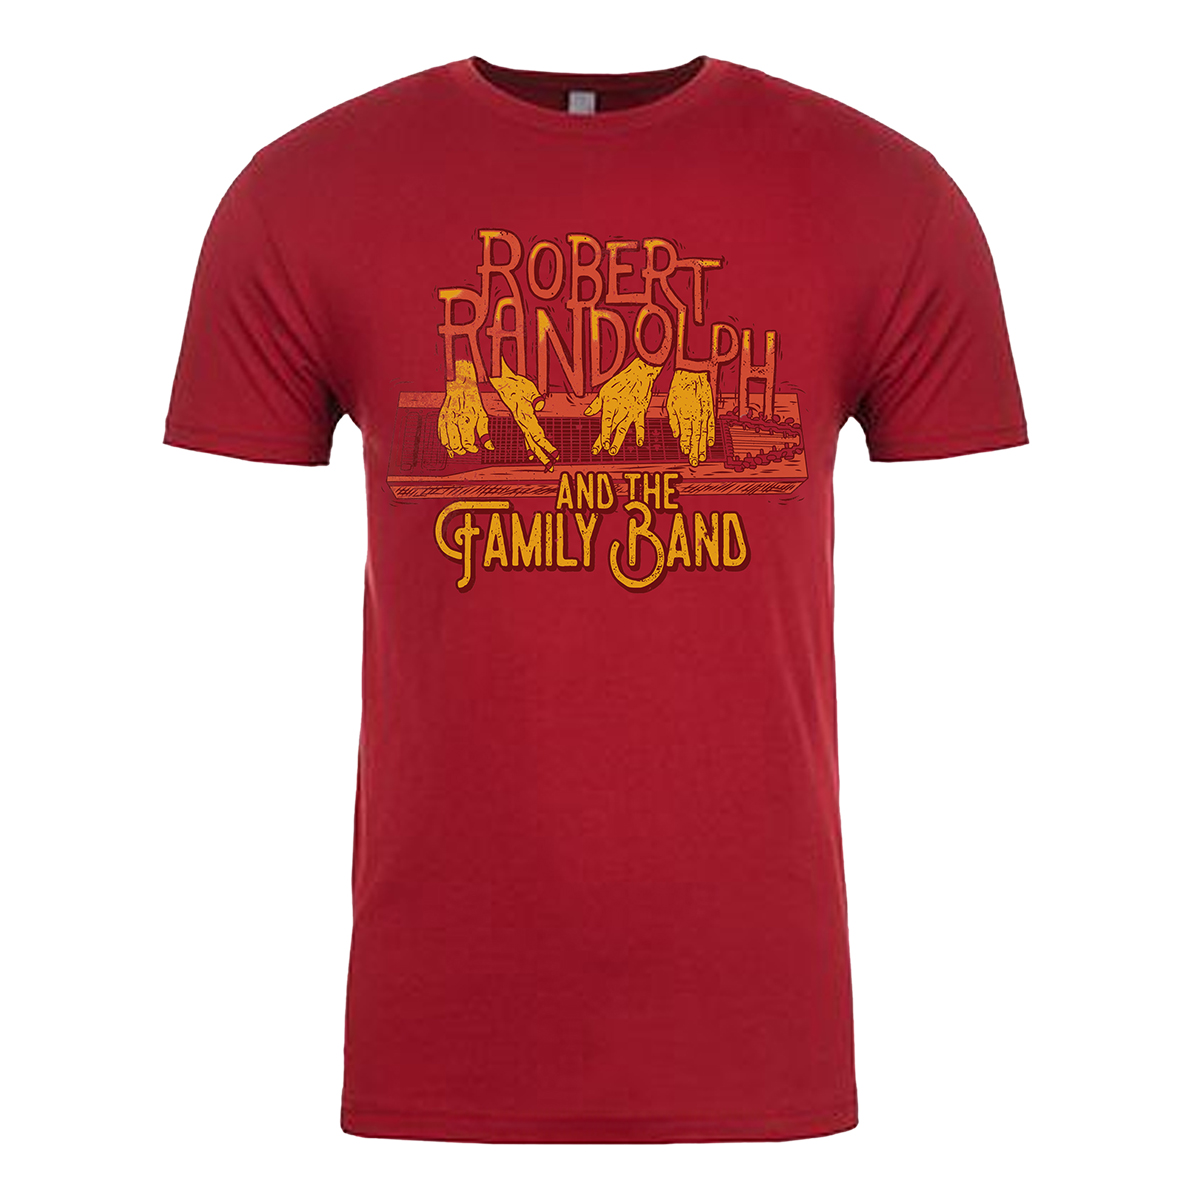 Robert Randolph and the Family Band Shirt